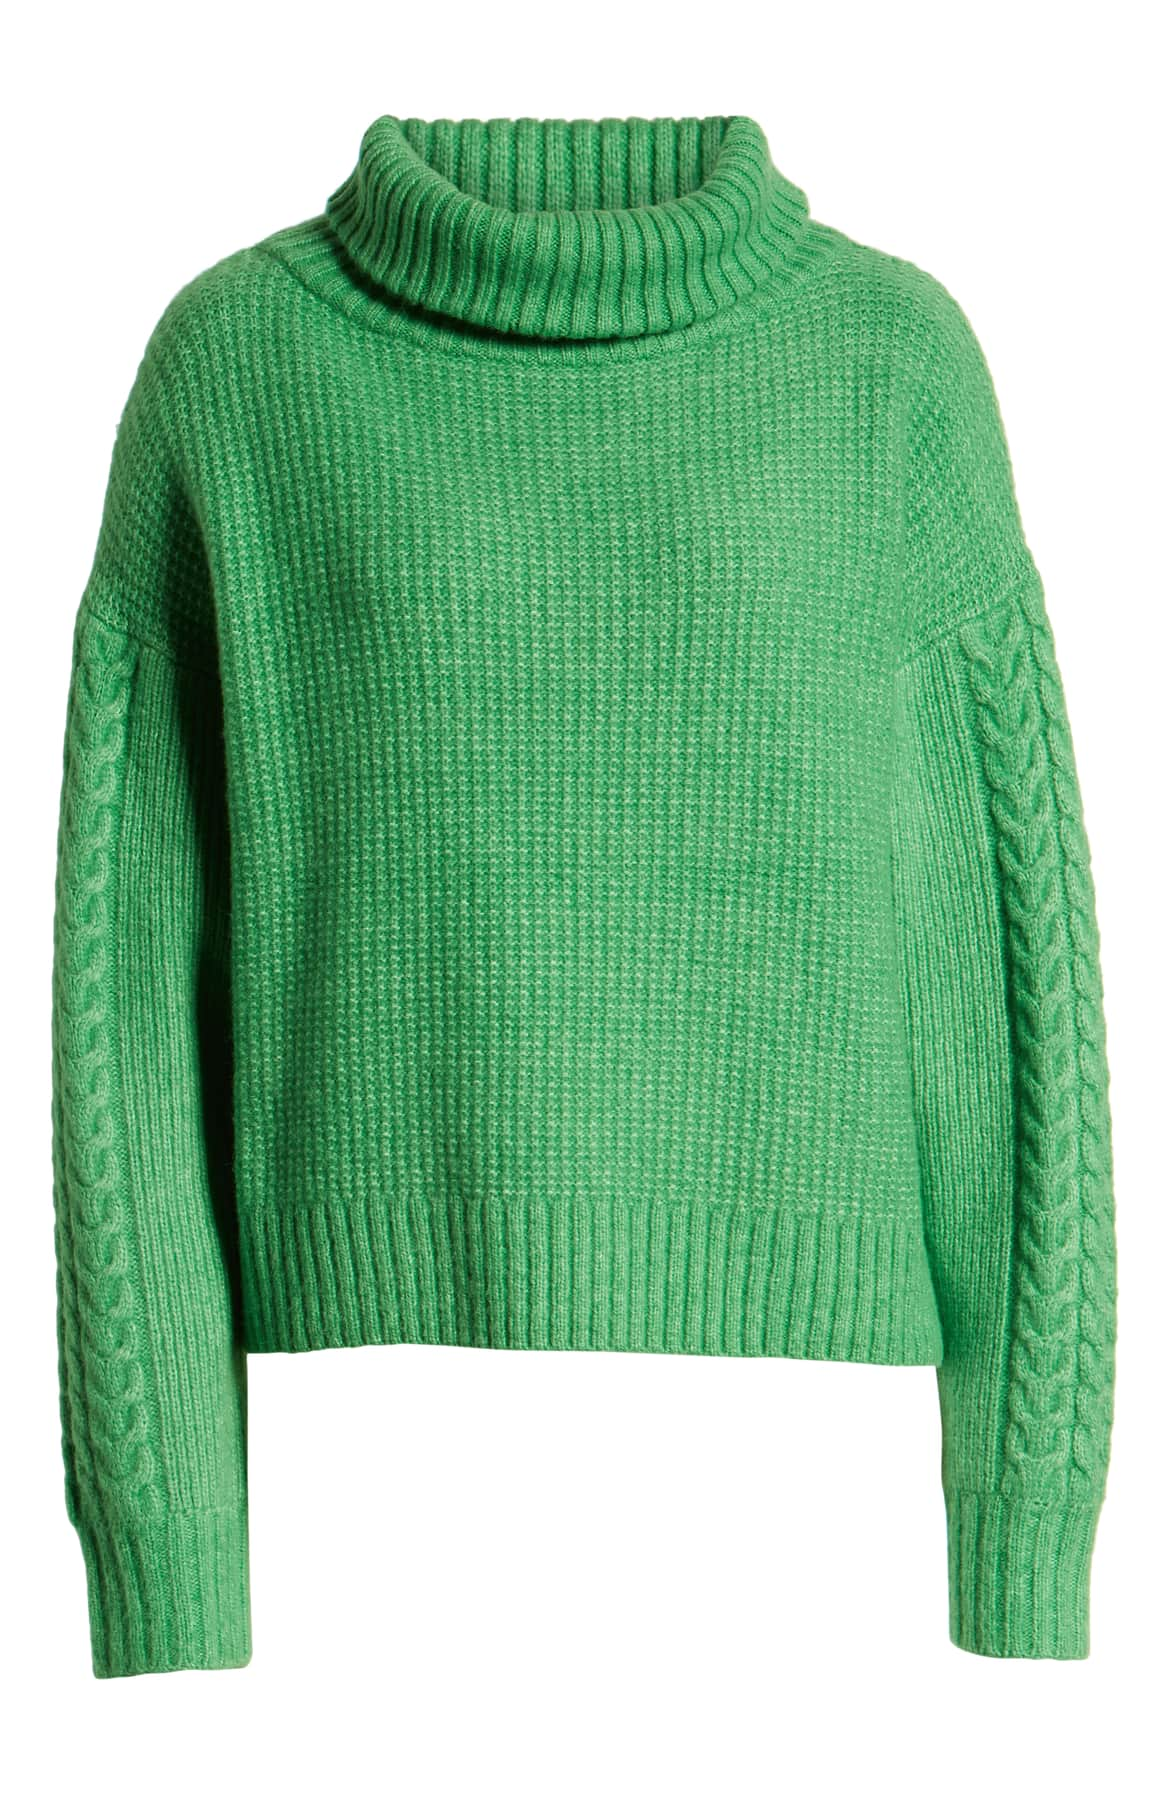 Every closet needs a trusty turtleneck, and this one is full of cozy warmth and tactile charm. $53.40 (Image: Nordstrom){ }